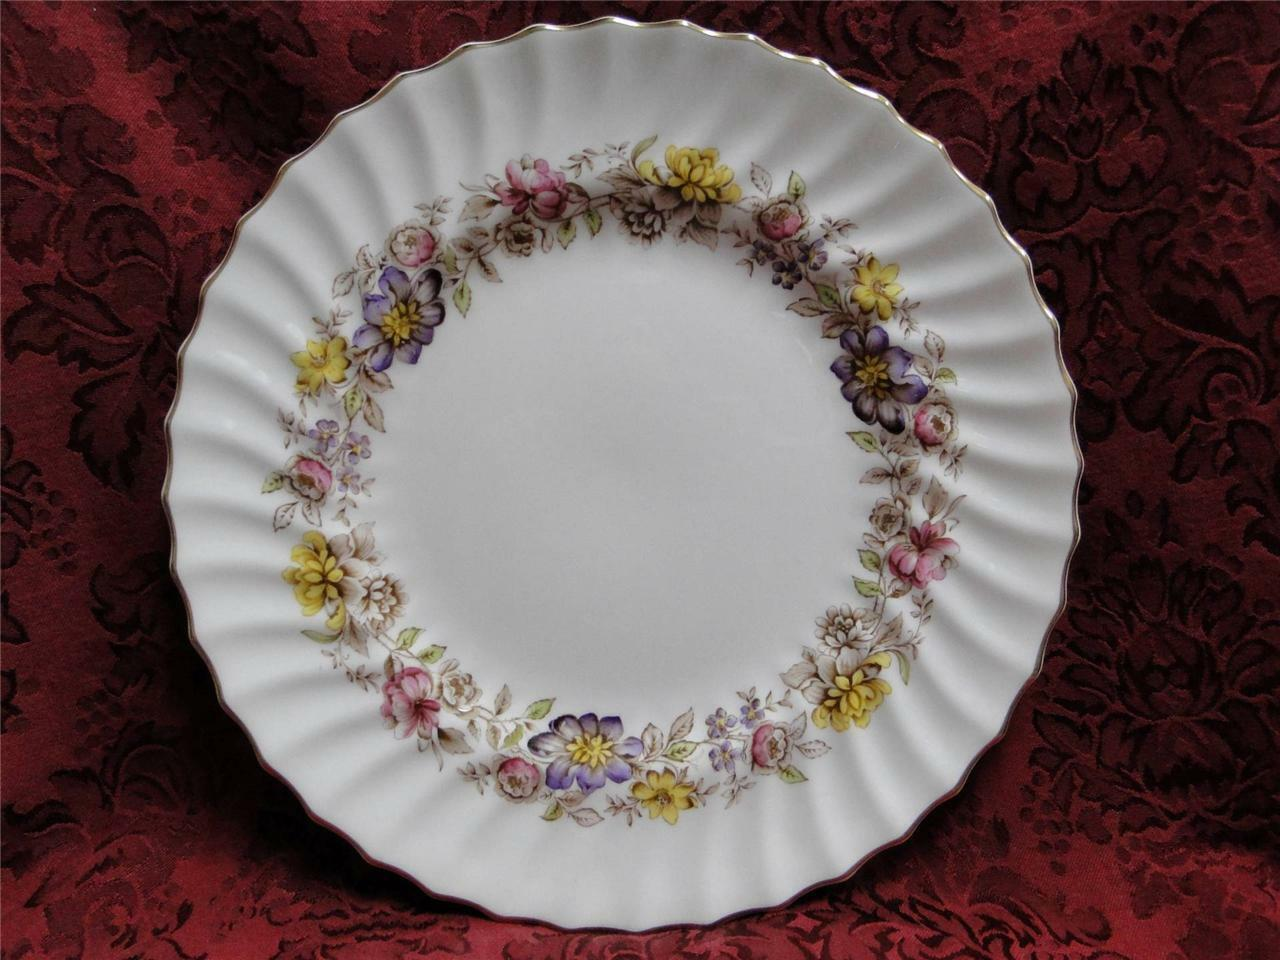 Royal Doulton Mayfair H4897, Multicolored Floral Band: Dinner Plate (s), 10.75""